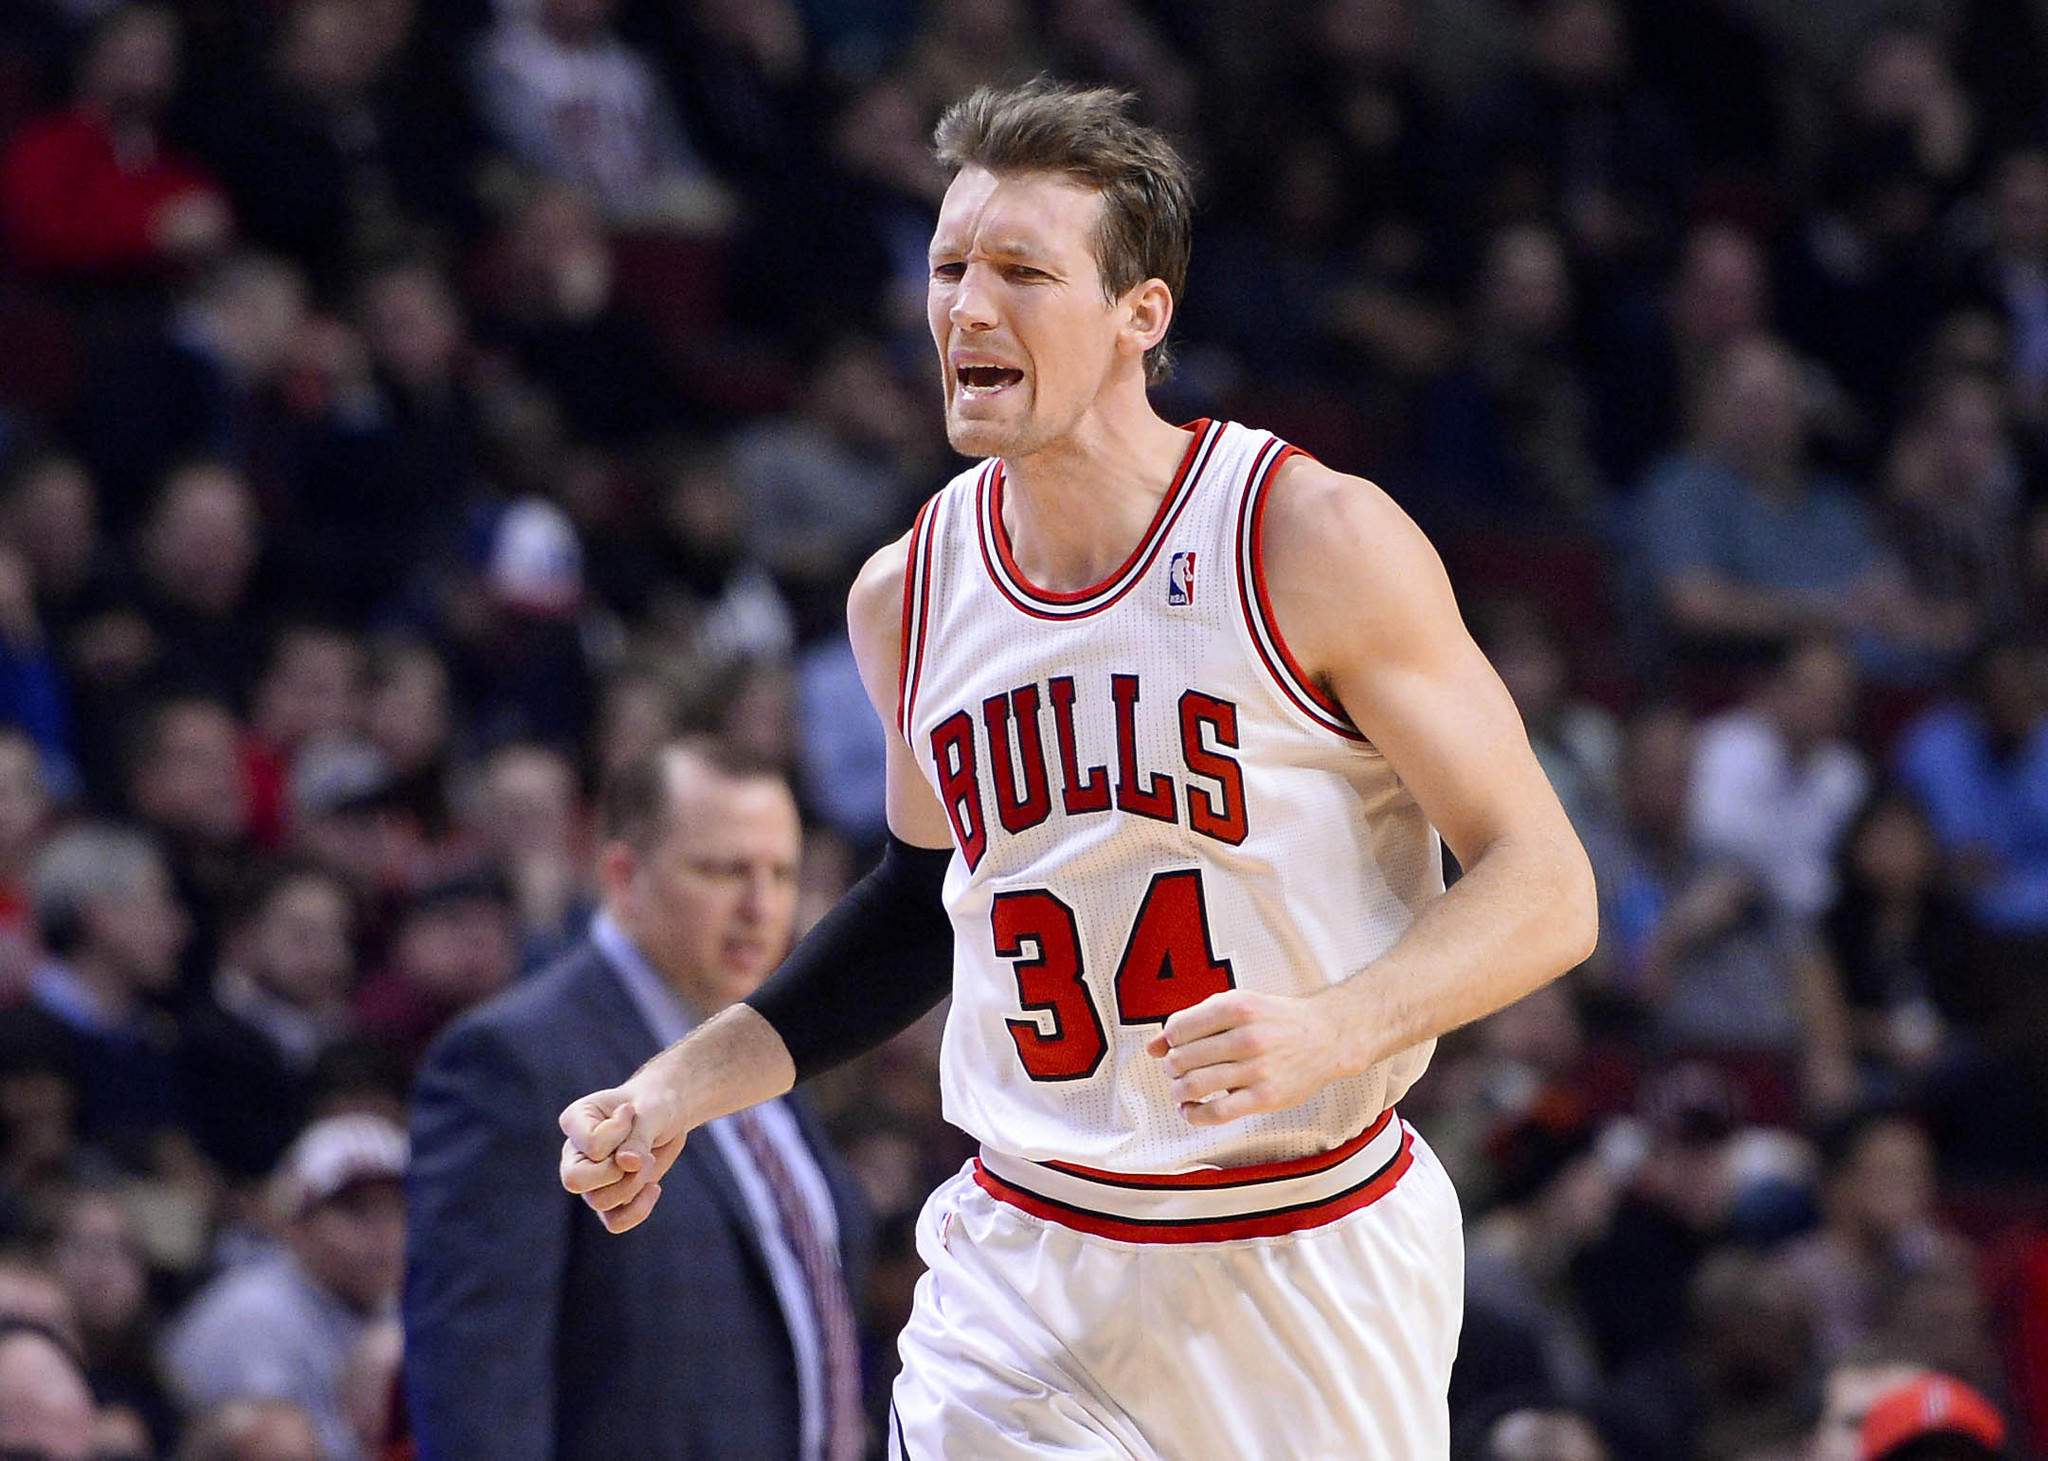 Chicago Bulls small forward Mike Dunleavy (34) reacts after a foul call against the Washington Wizards during the first half at United Center.